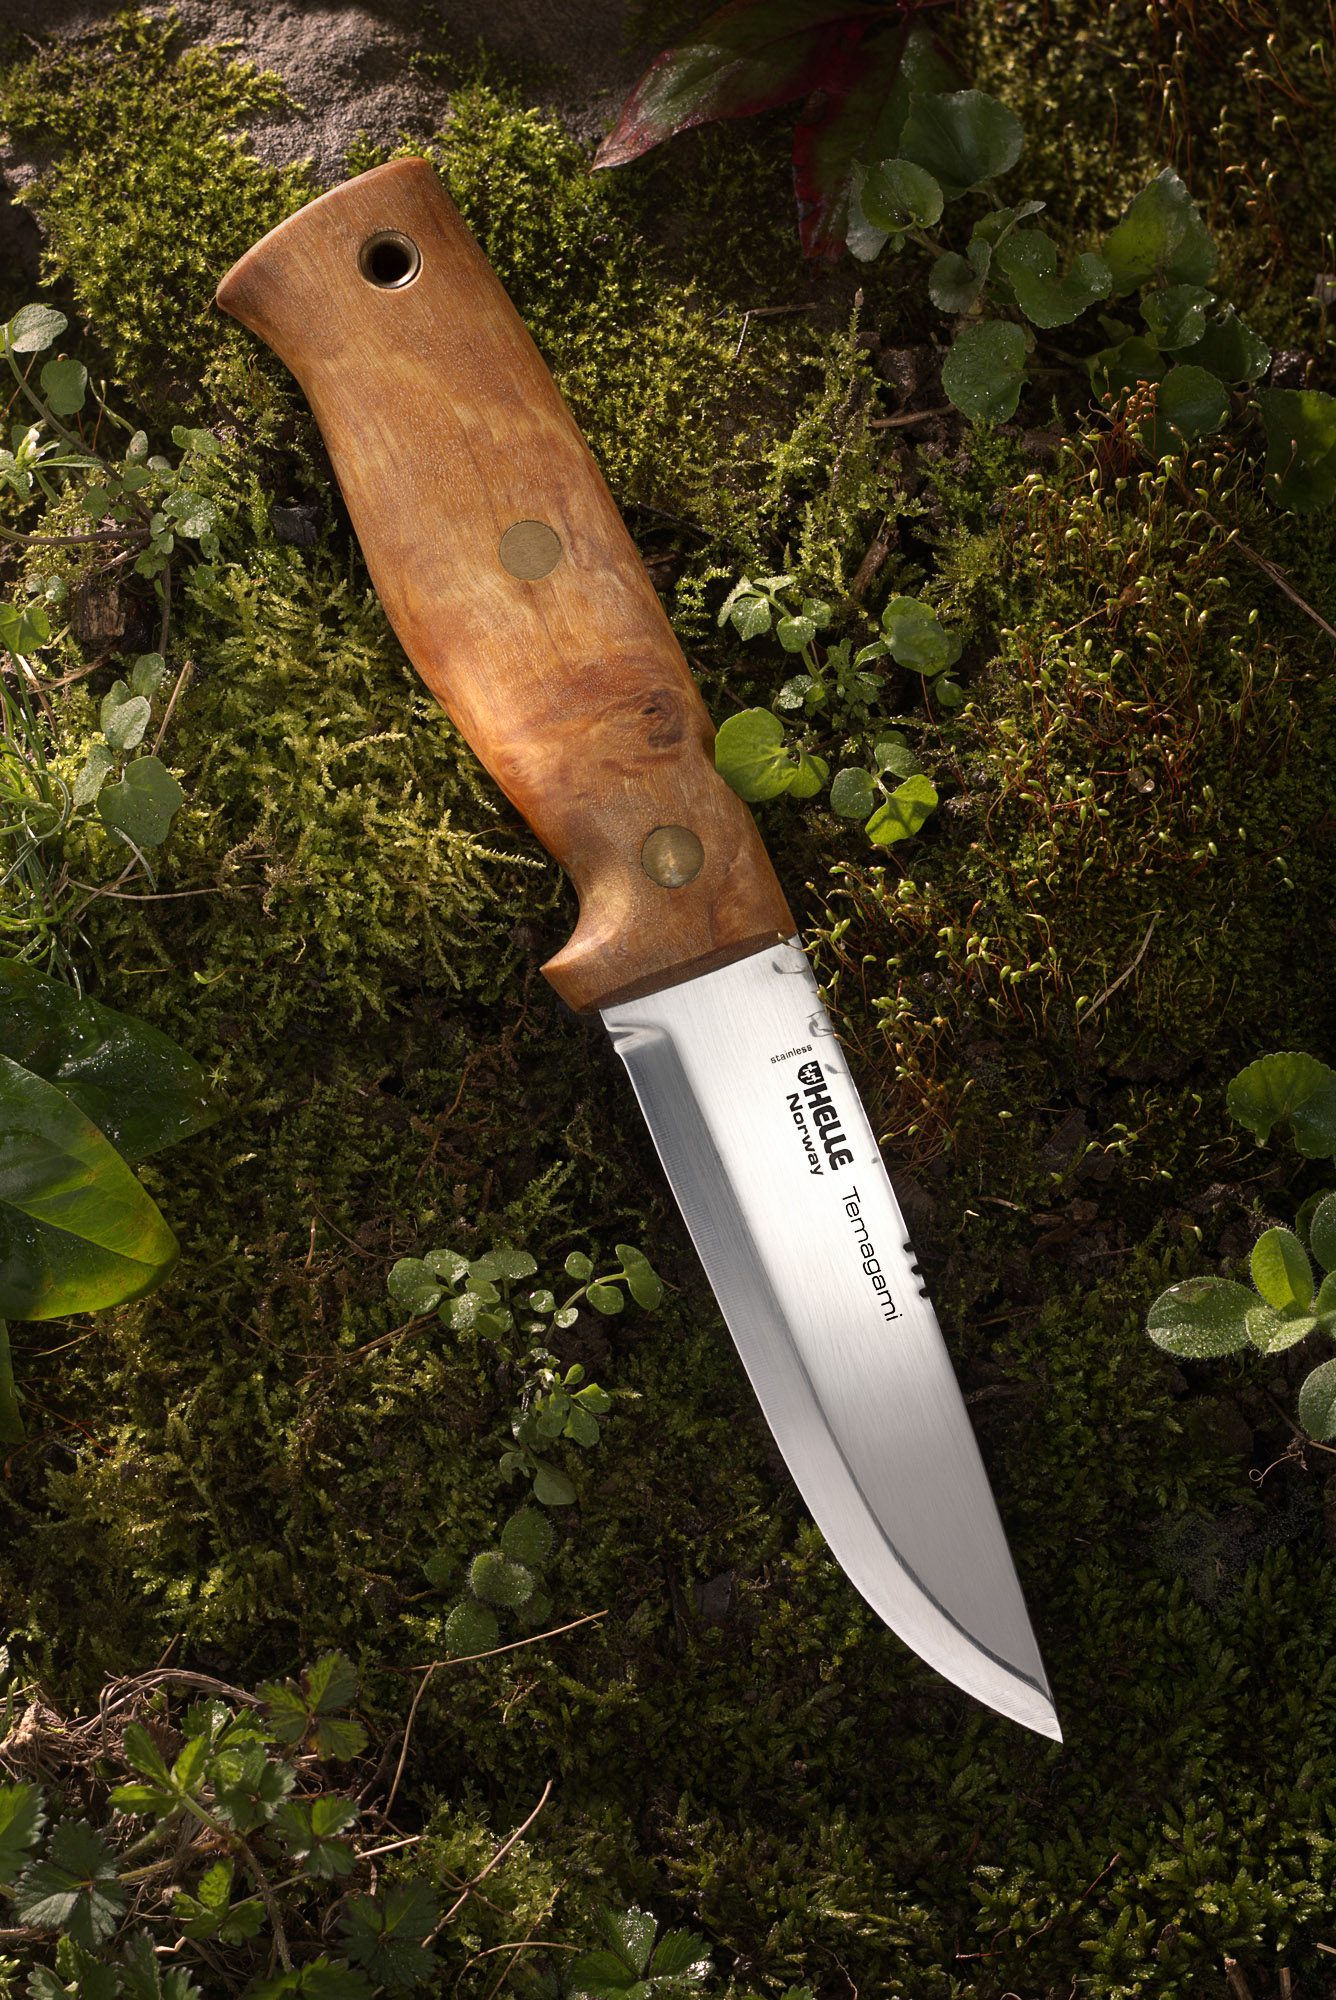 21 Fielder Williams Strain fiwist Nashville Product Photographer Helle temagami knife .jpg